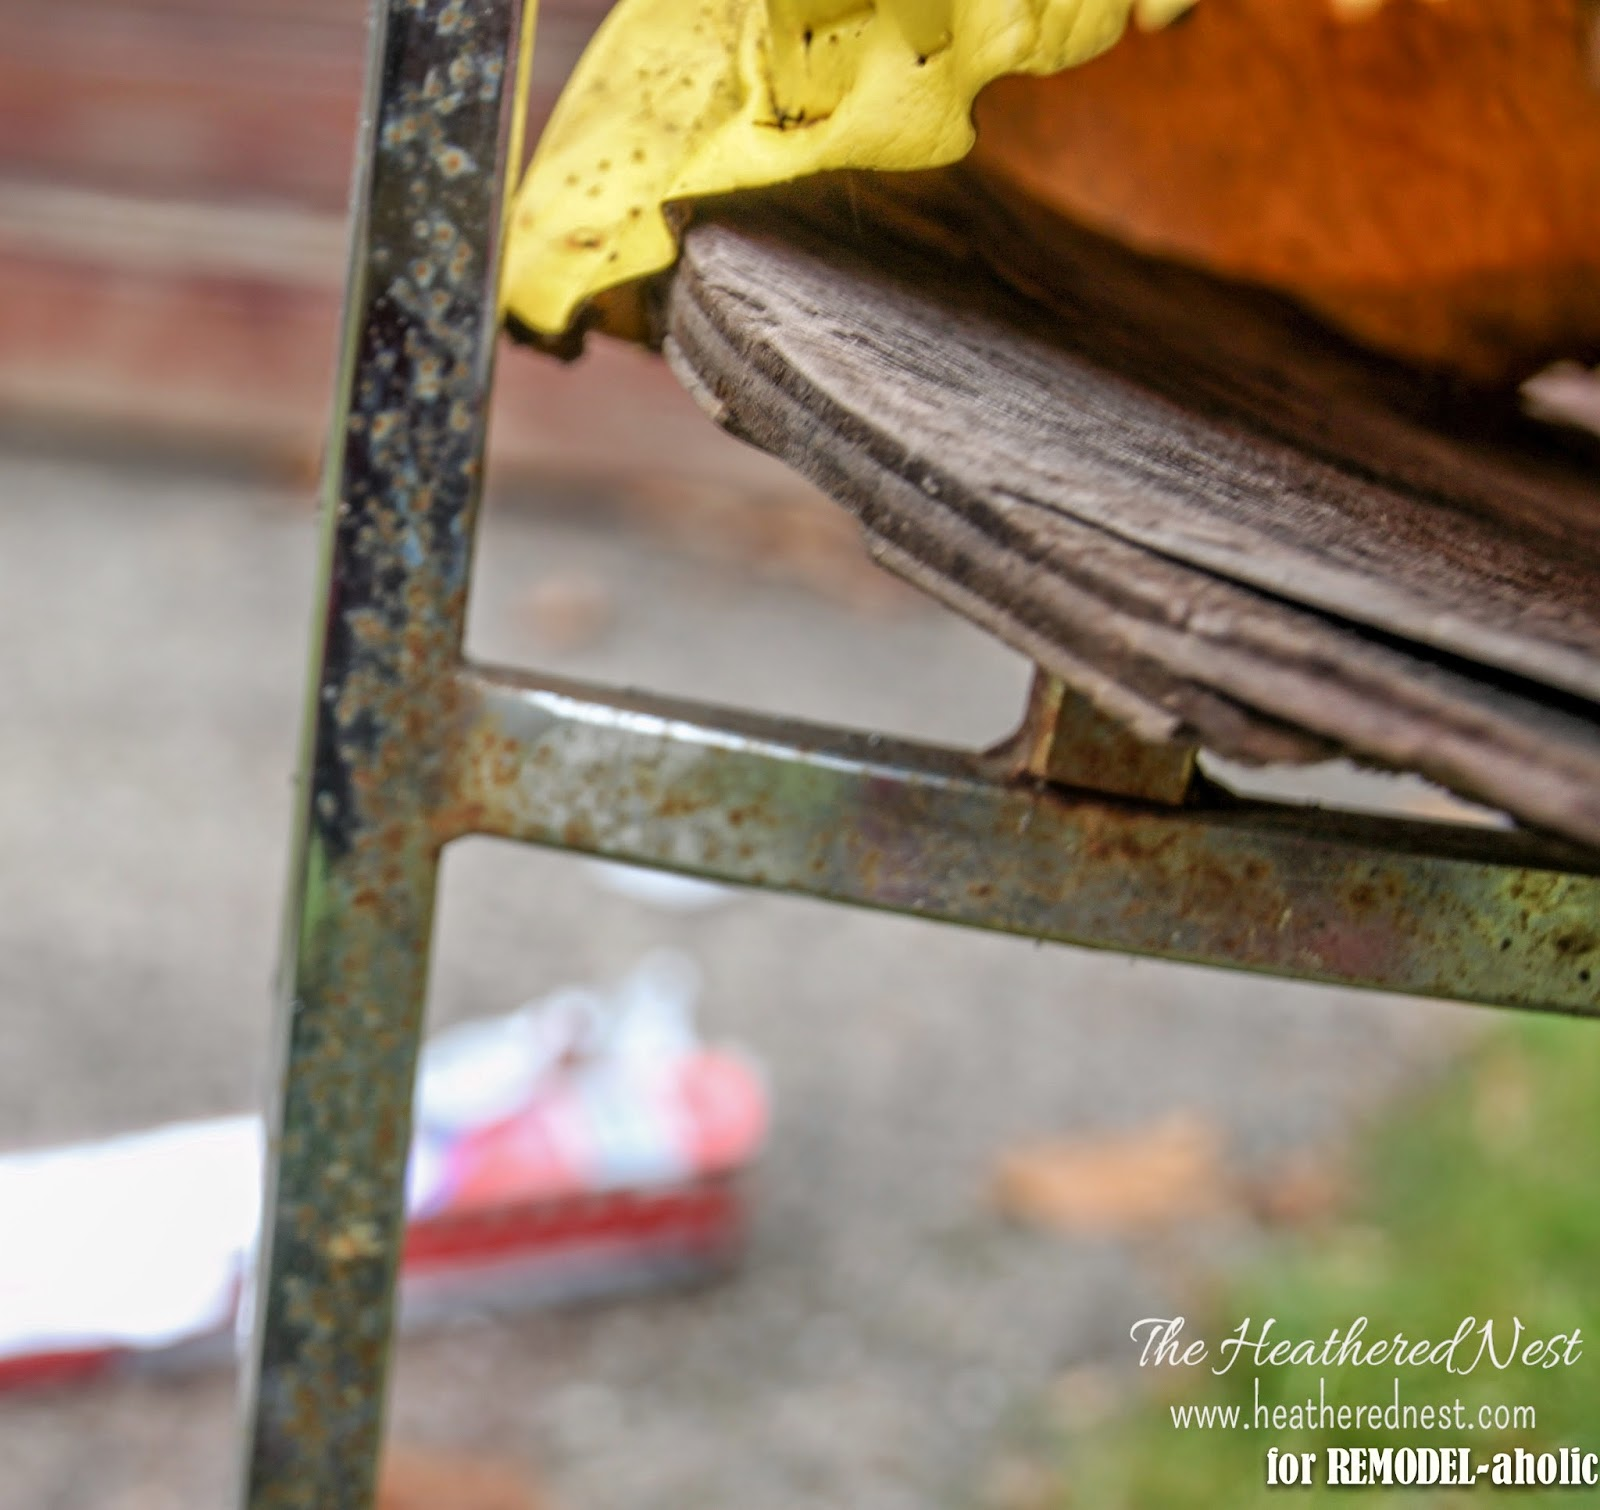 Remodelaholic how to restore rusty chrome how to repair a rusty chair by the heathered nest featured on remodelaholic watchthetrailerfo